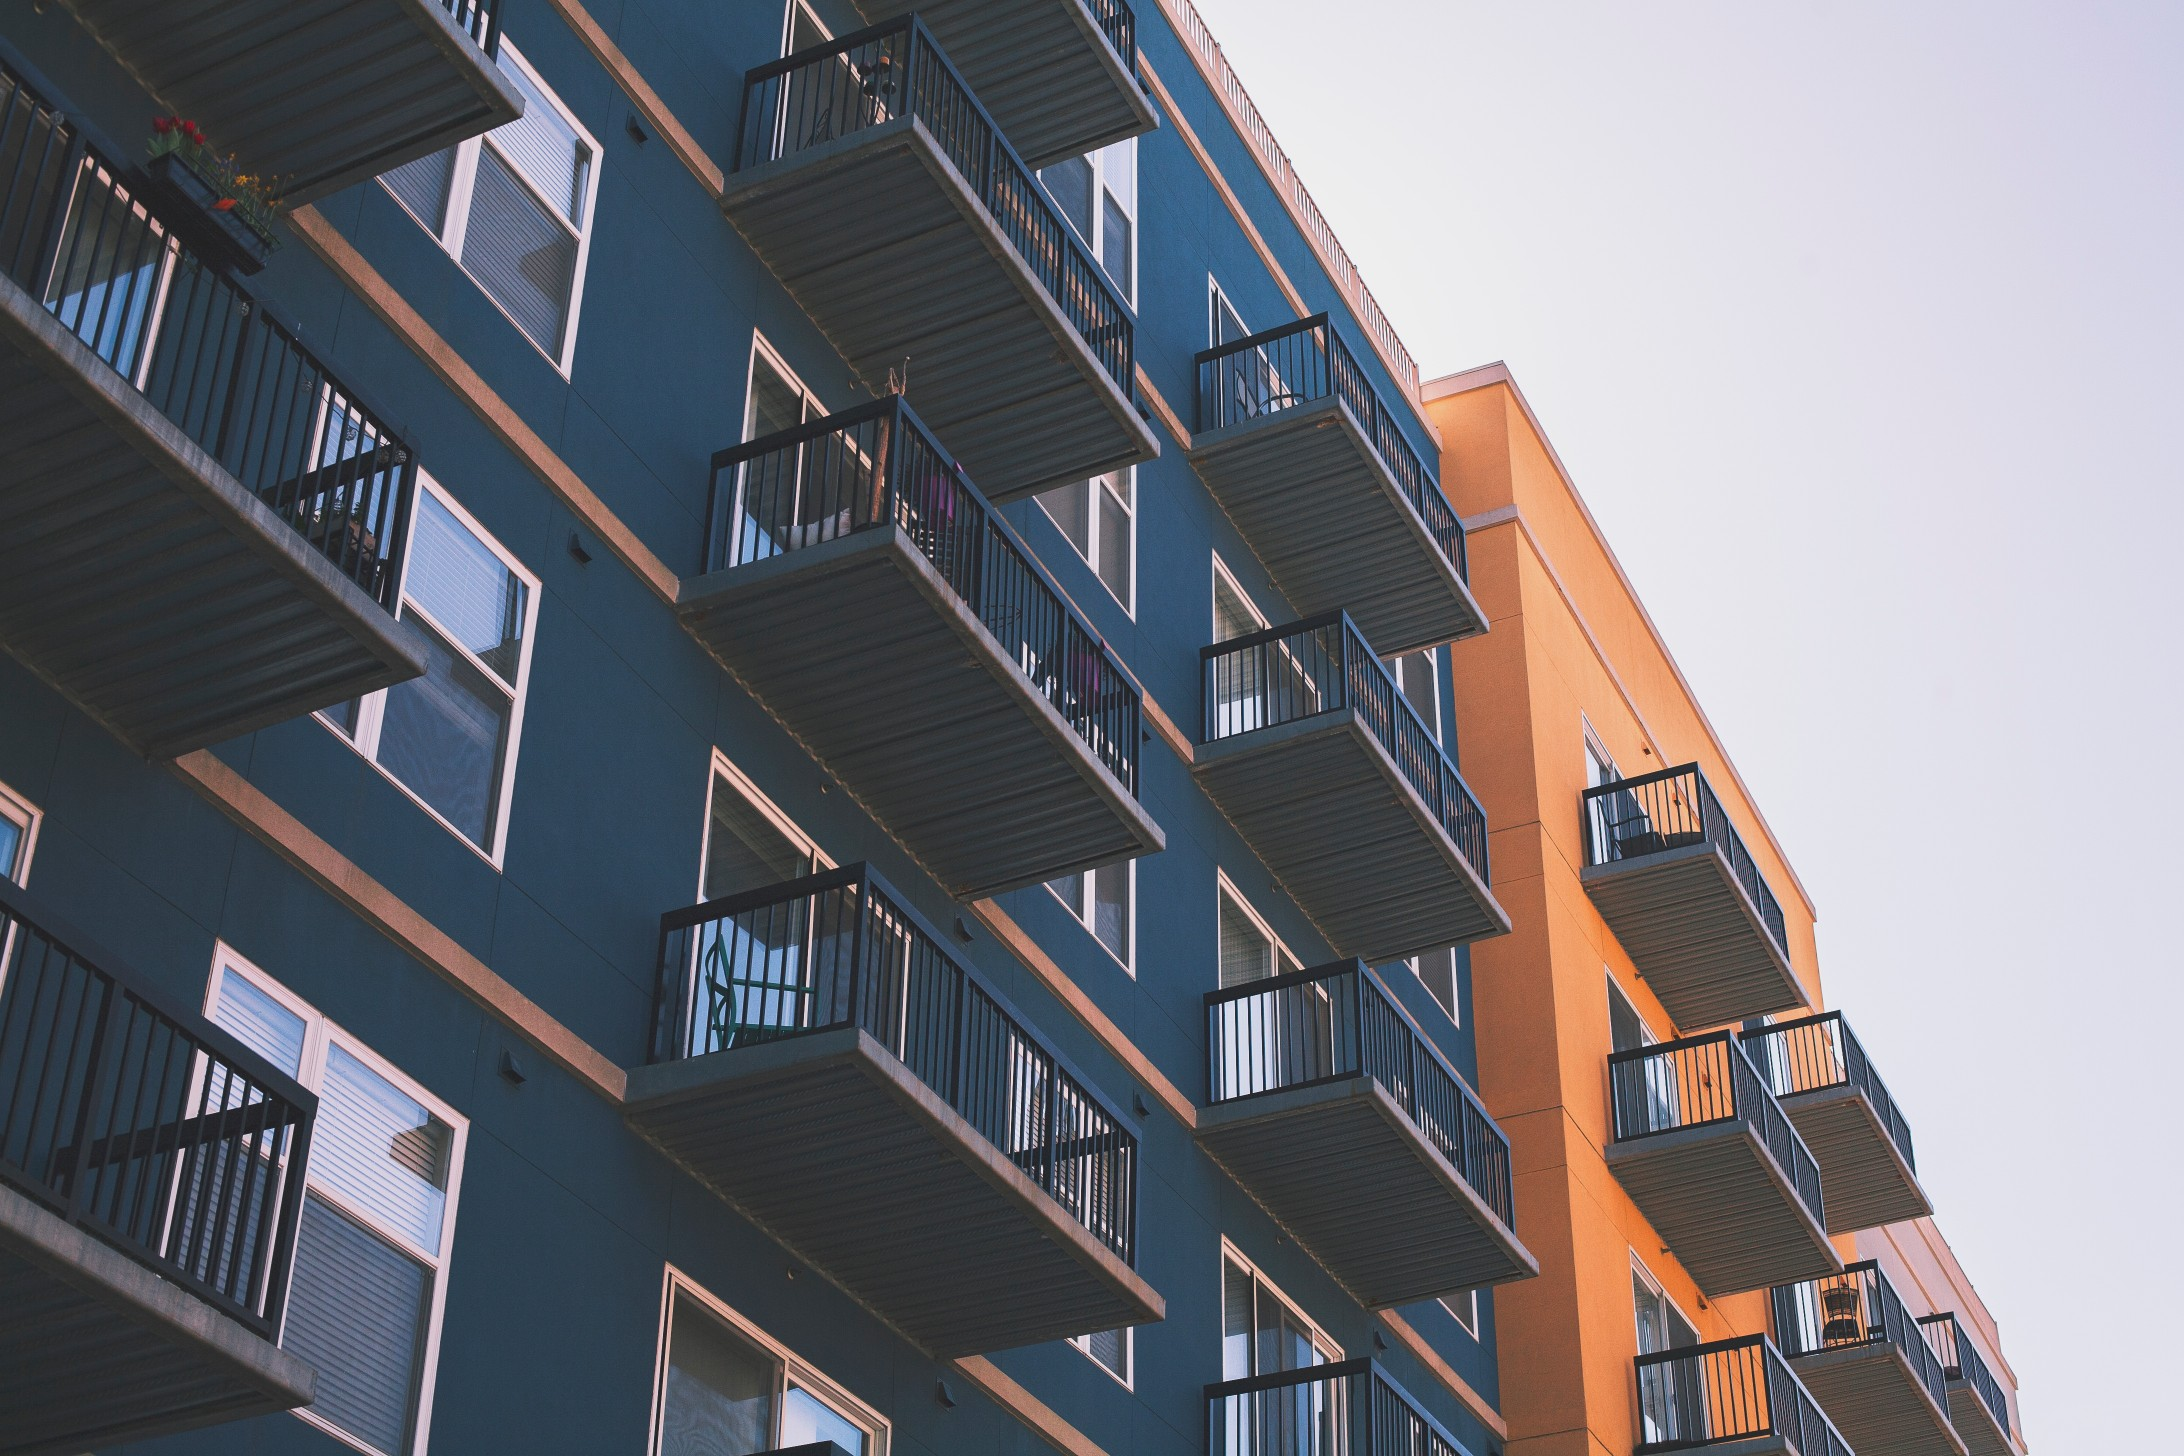 Whether Purchasing As A Buytolet Or For Your Own Home, Leasehold Flats  Are A Popular Choice In Todays Sales Market Due To Longer Working Hours  And Just